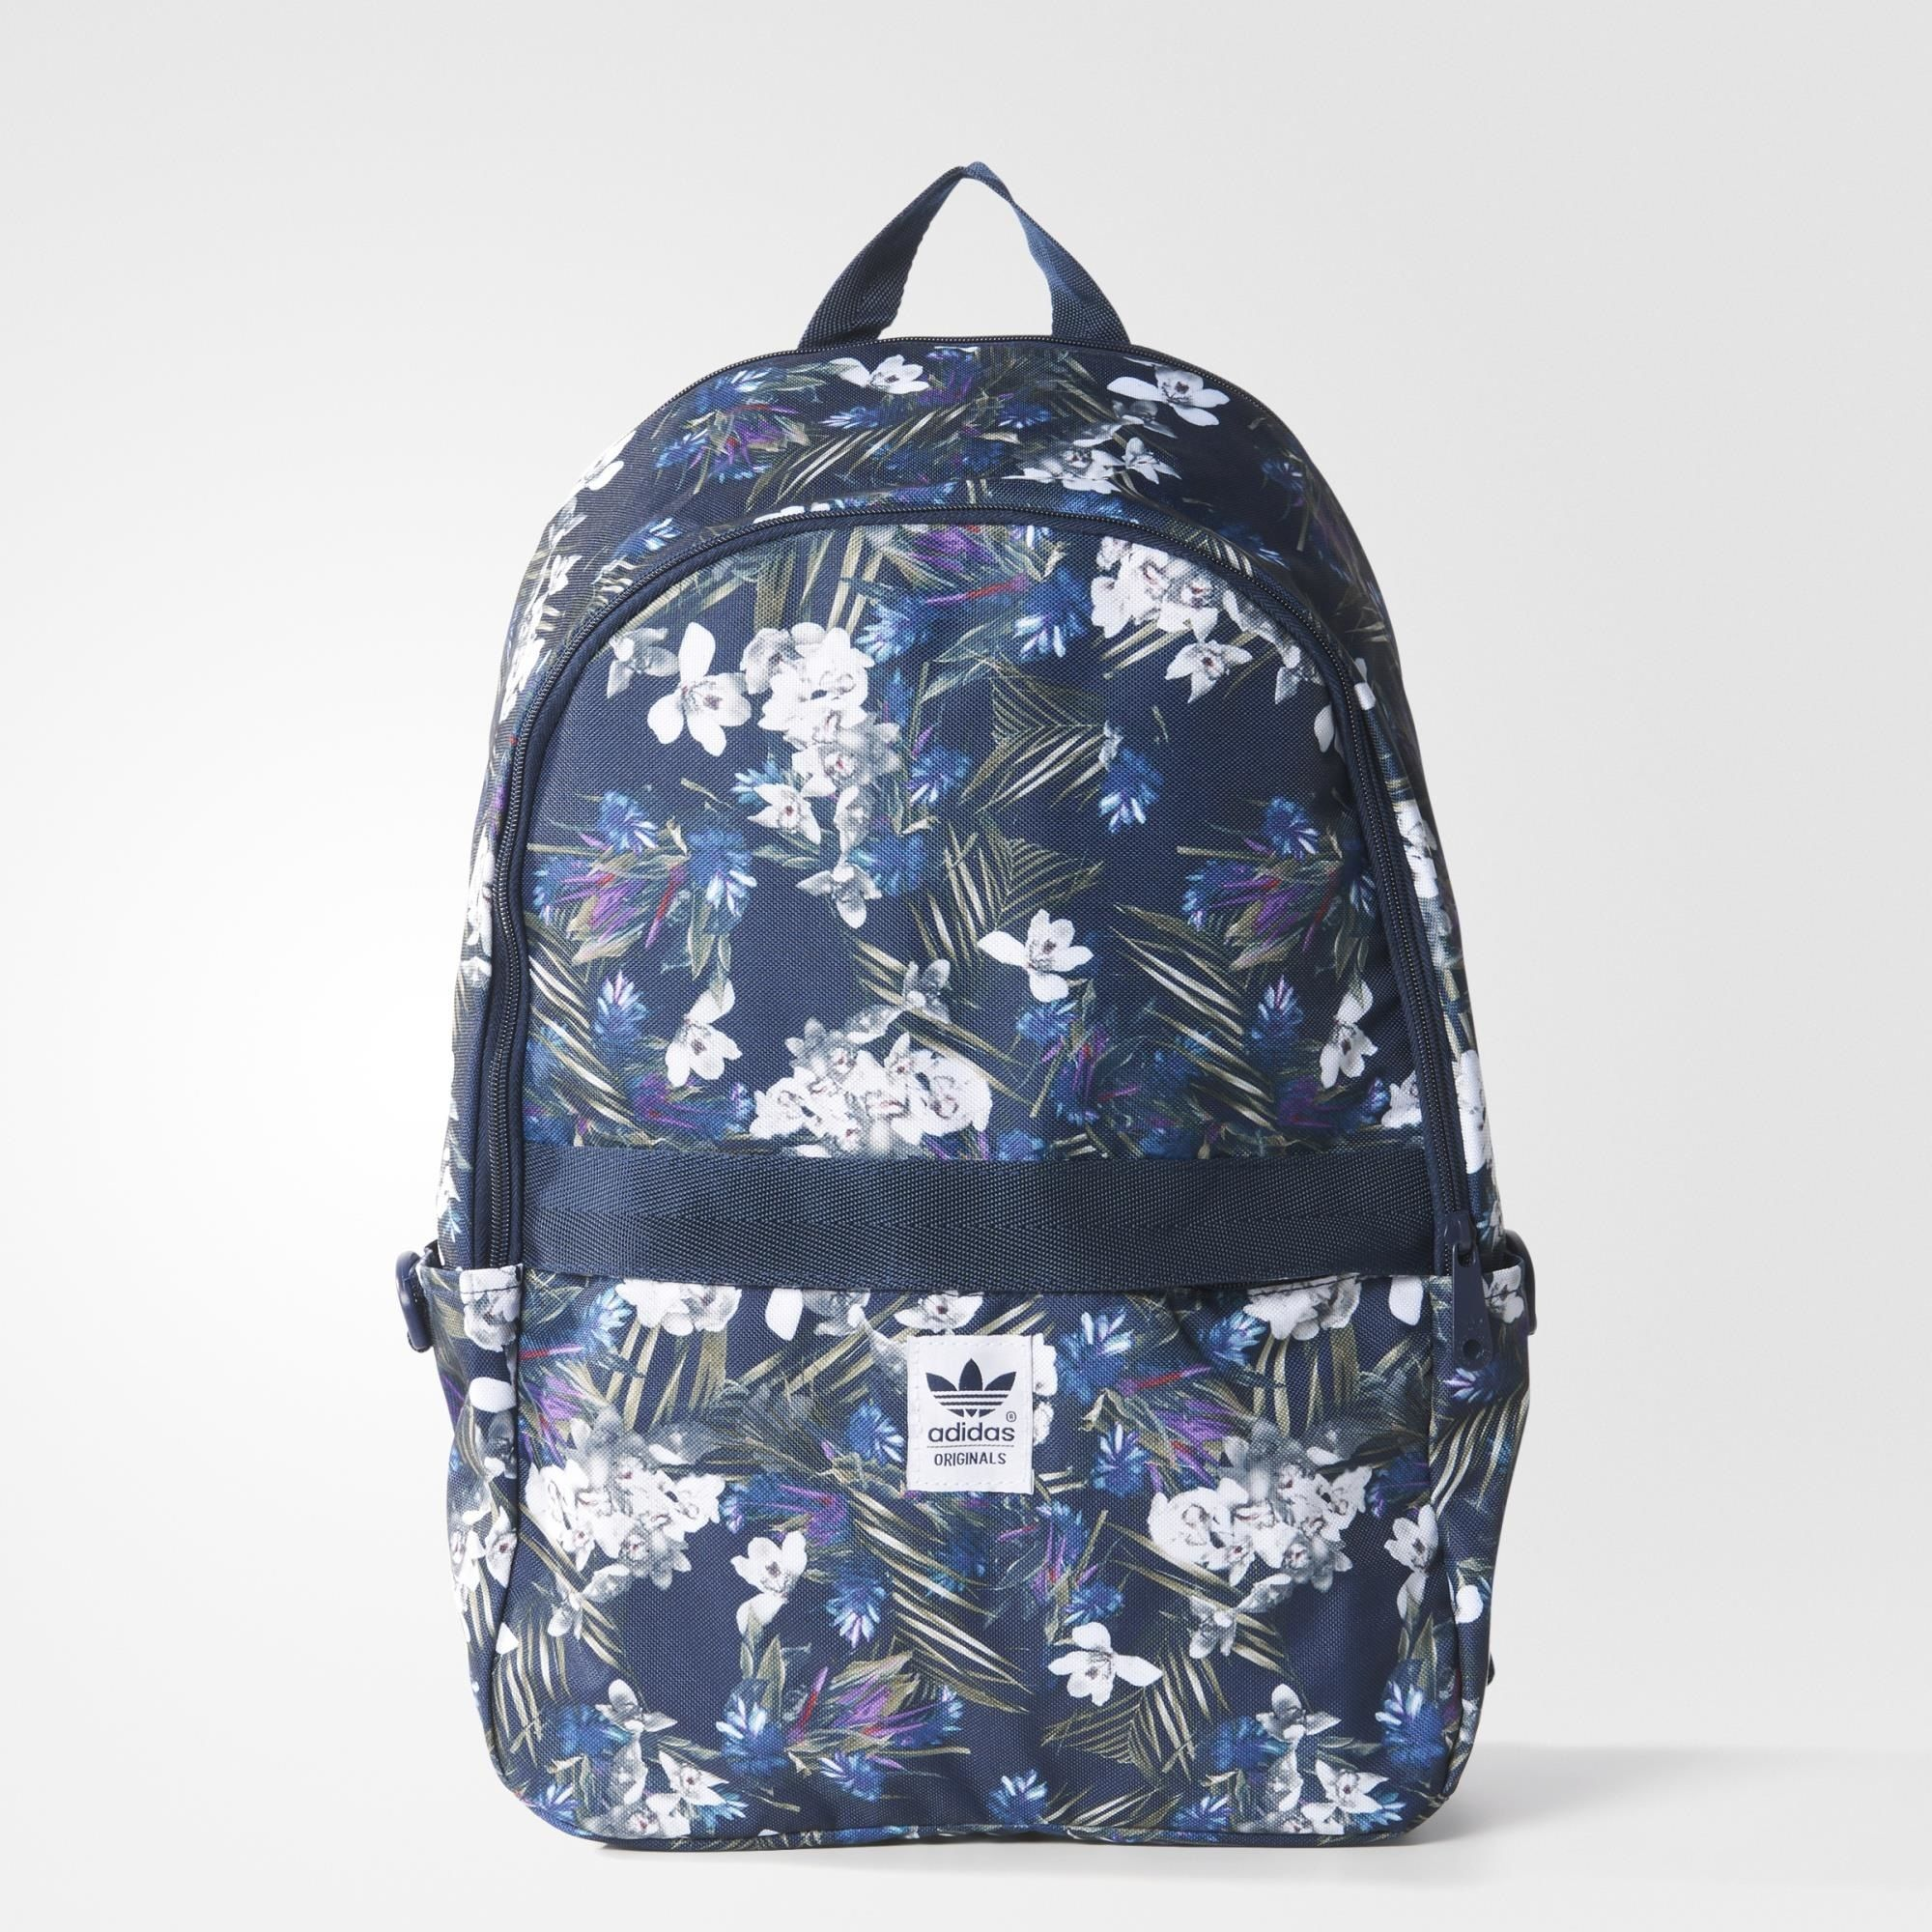 0d14a0a124208 adidas Dark Floral Backpack - Multicolor